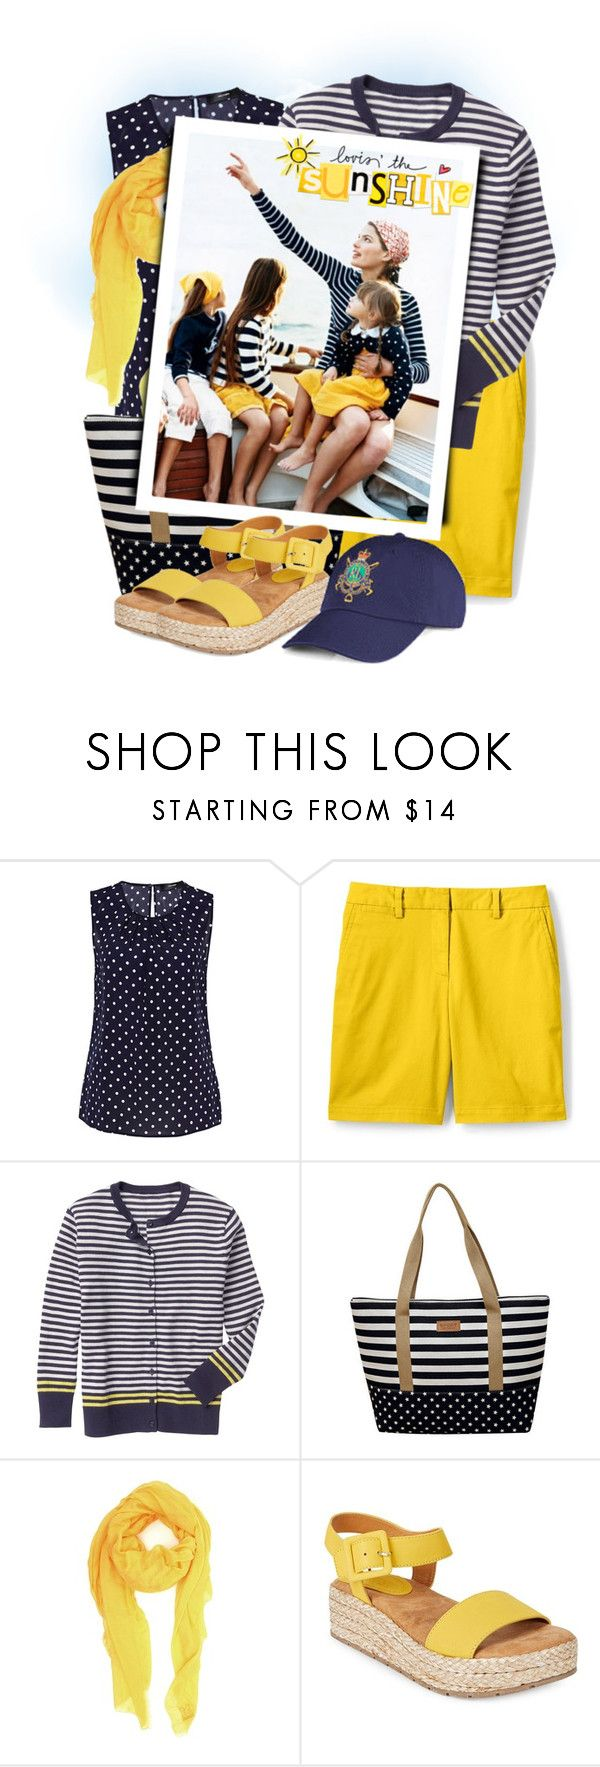 """Women's  Chino Shorts"" by tasha1973 ❤ liked on Polyvore featuring Hallhuber, Lands' End, Gap, M Missoni and Kenneth Cole Reaction"